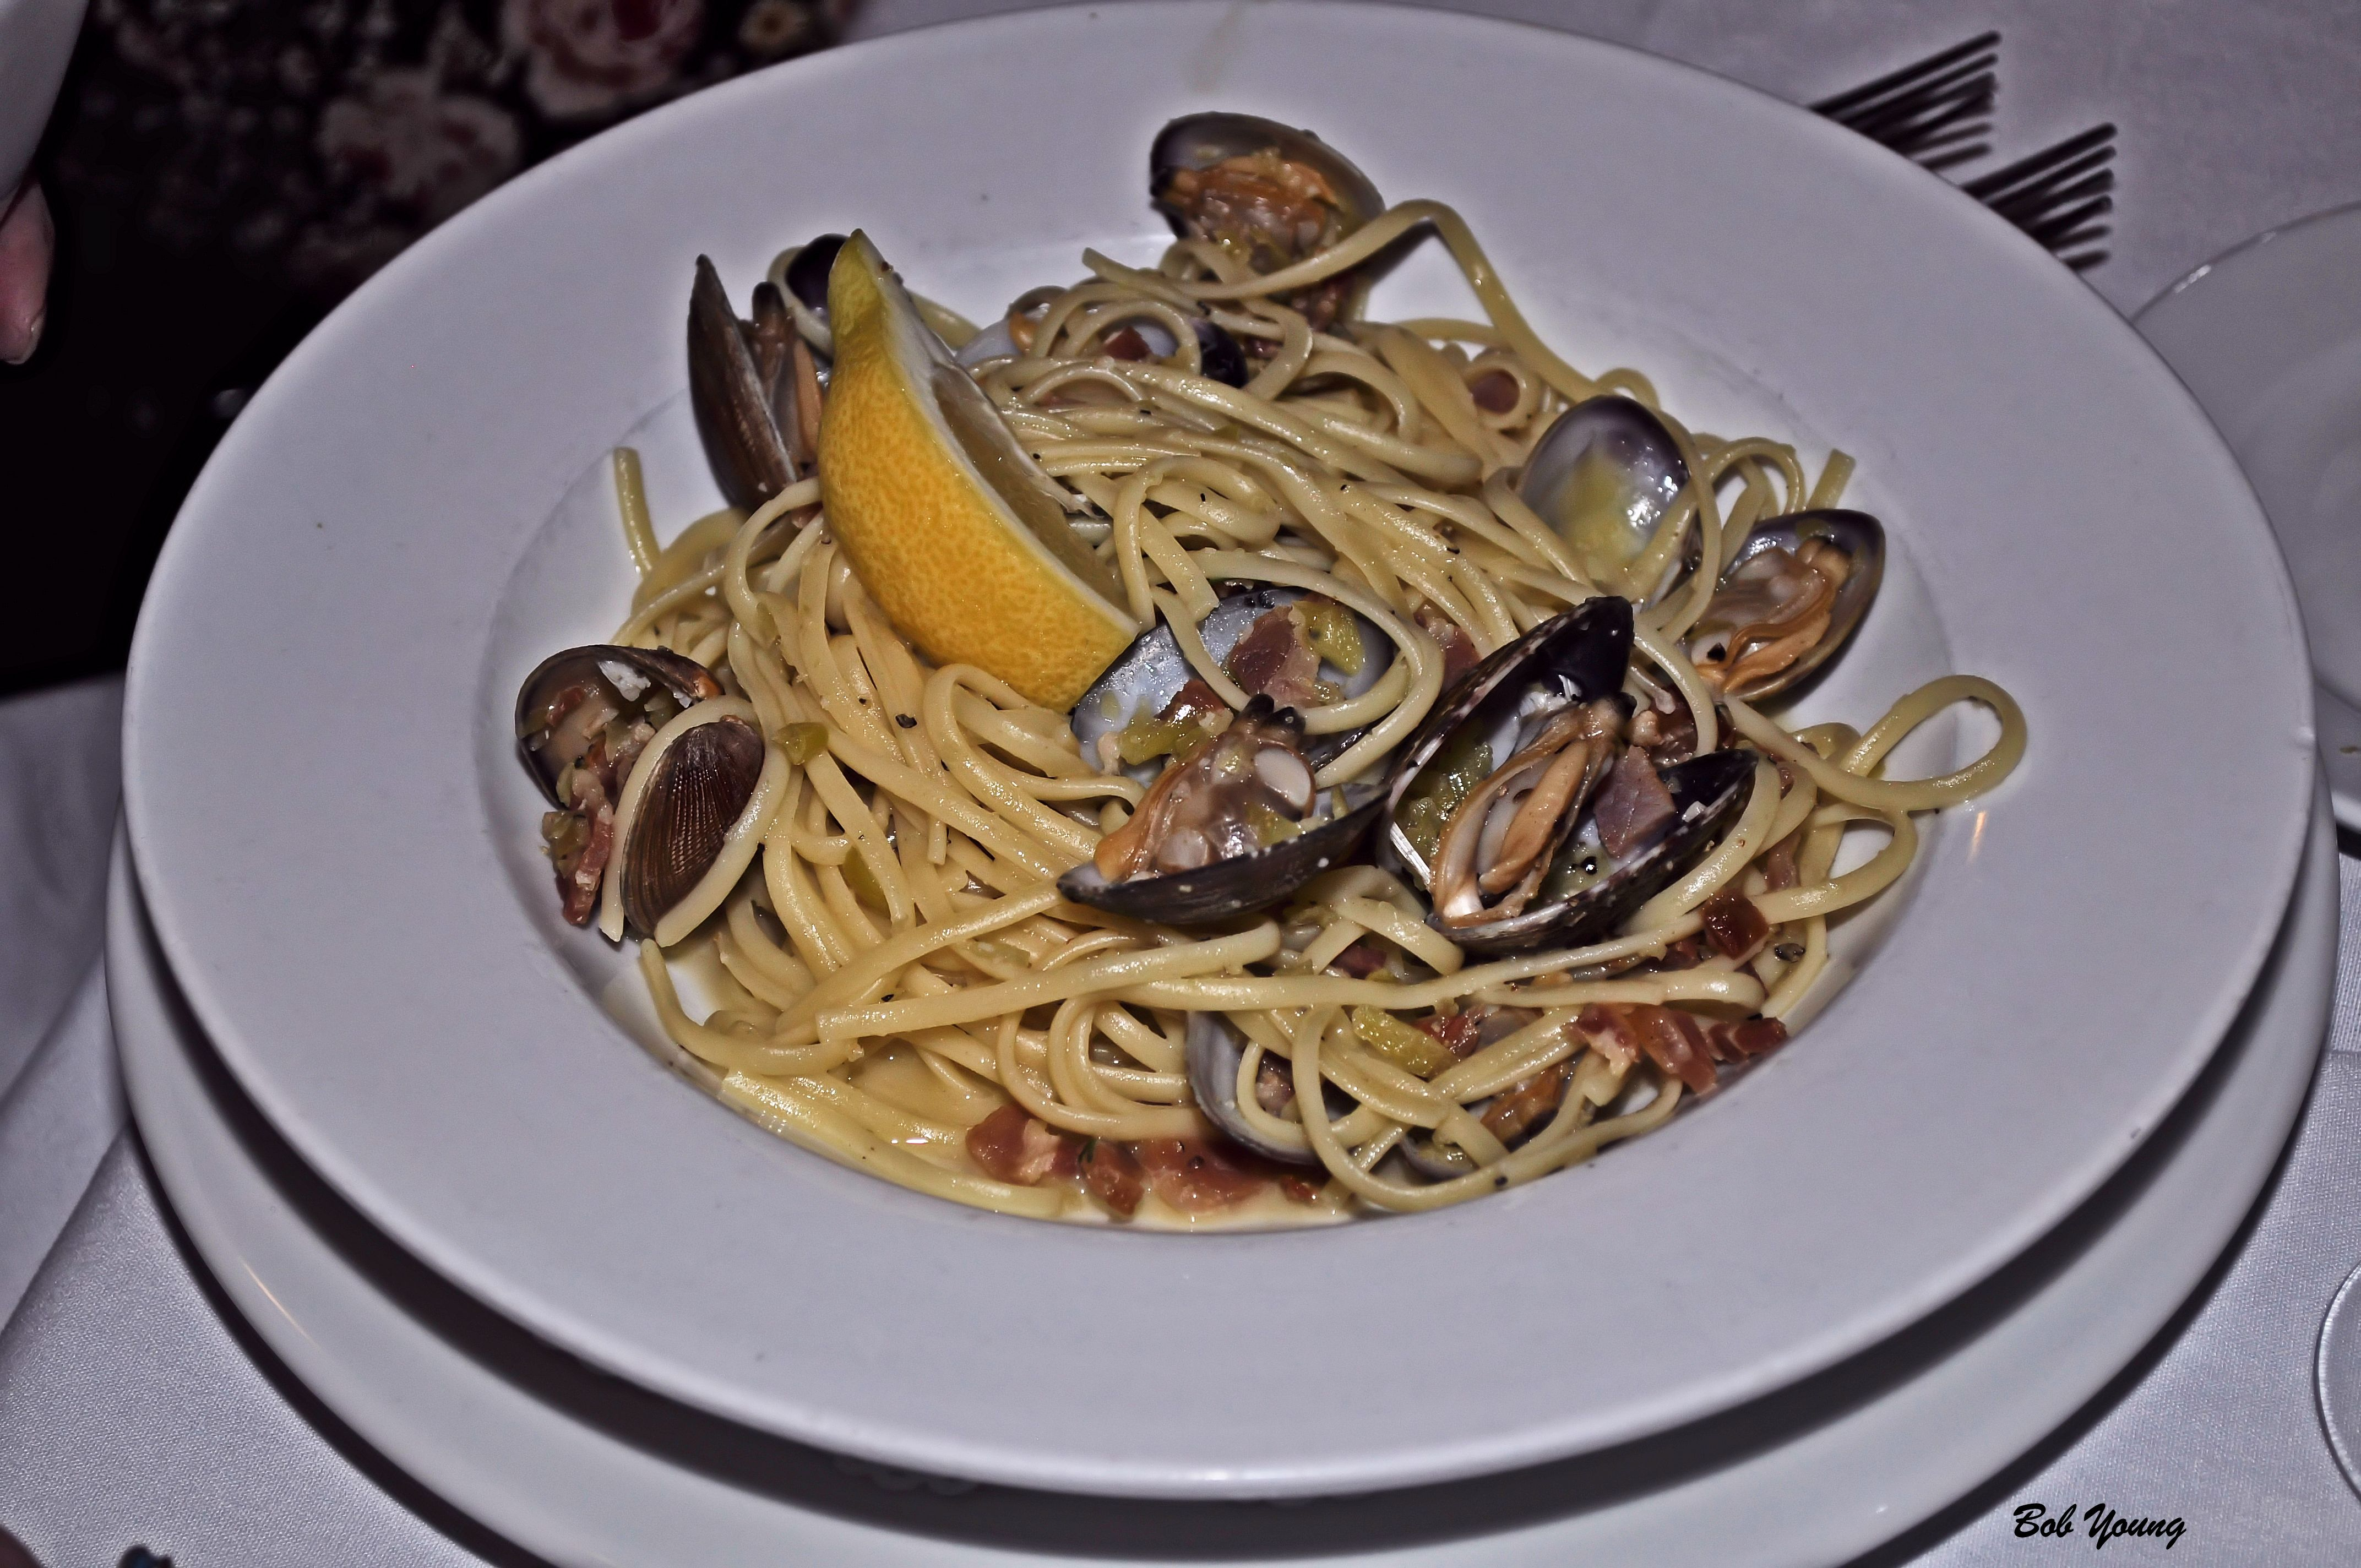 Forum on this topic: Linguine with Broccoli Rabe and Anchovies, linguine-with-broccoli-rabe-and-anchovies/